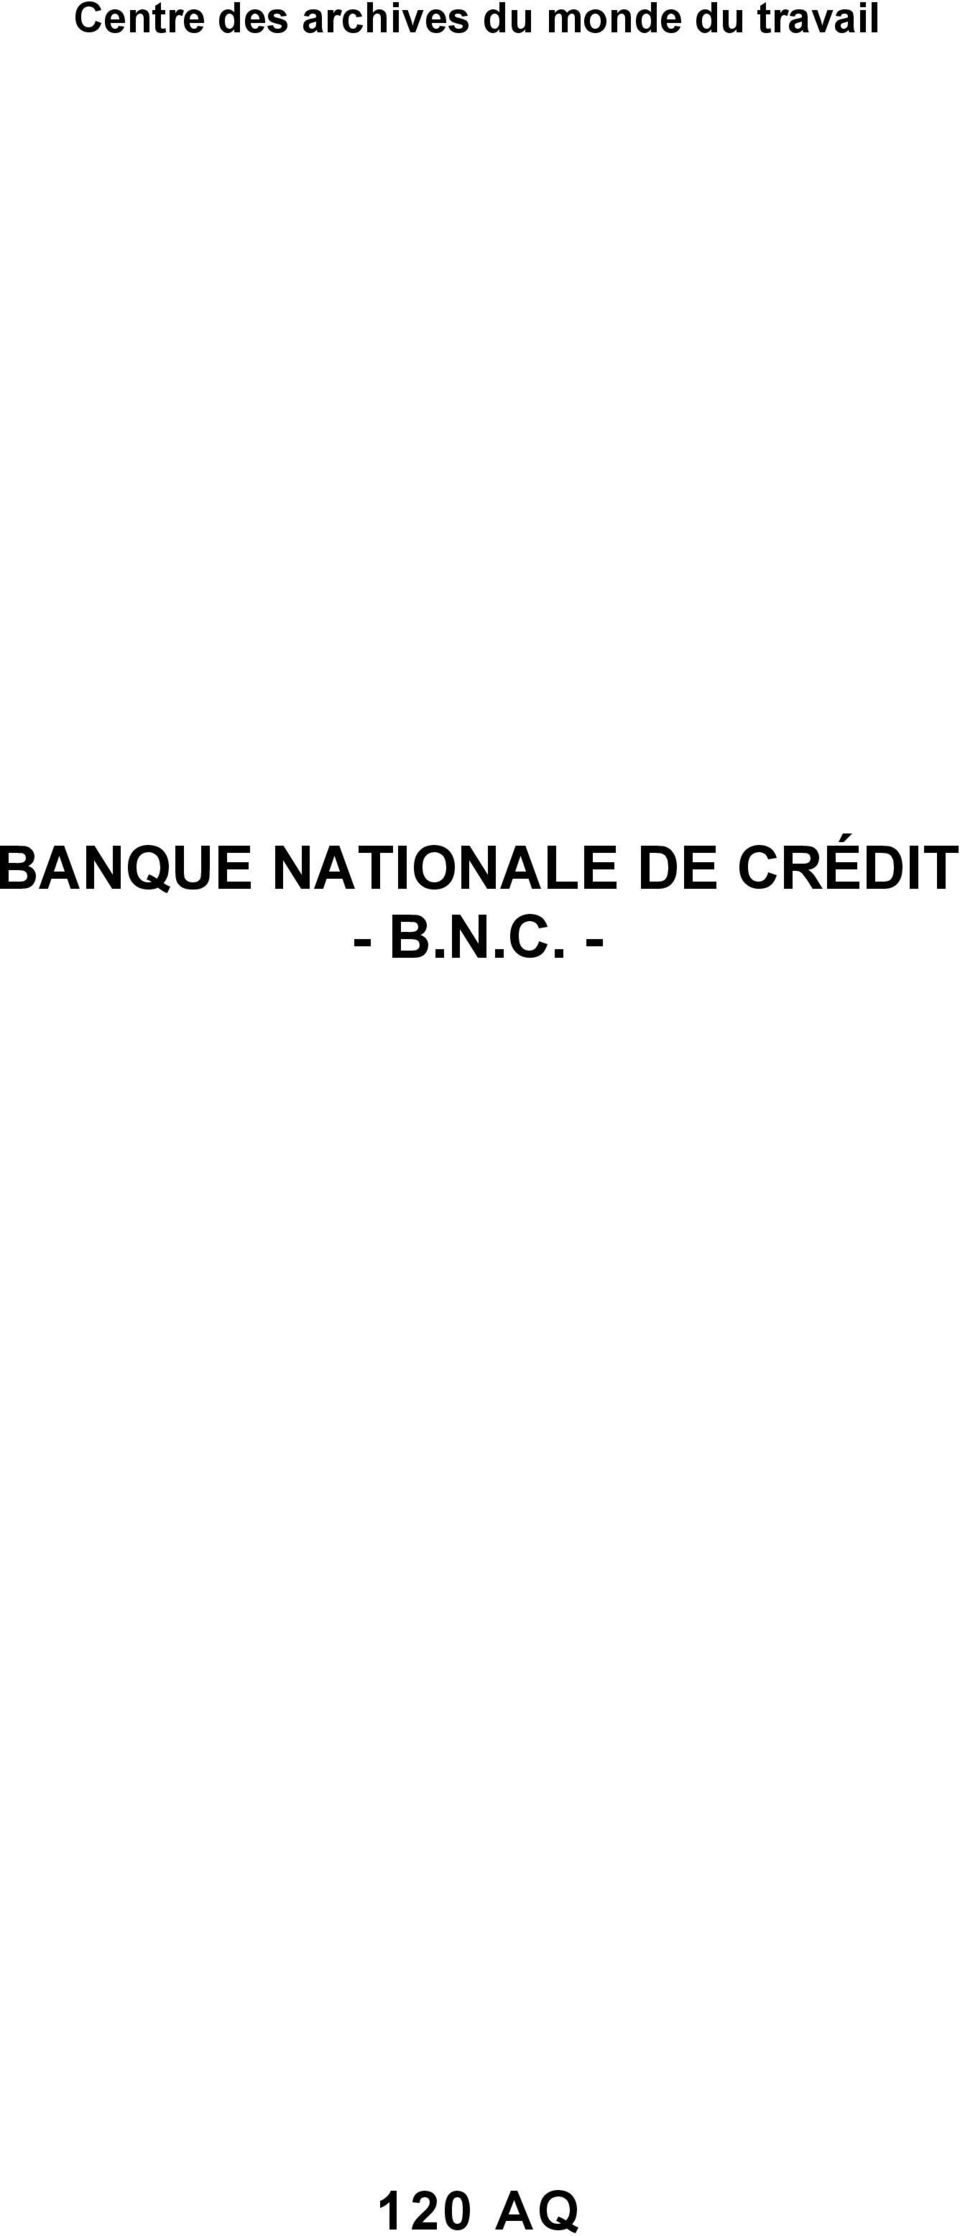 BANQUE NATIONALE DE